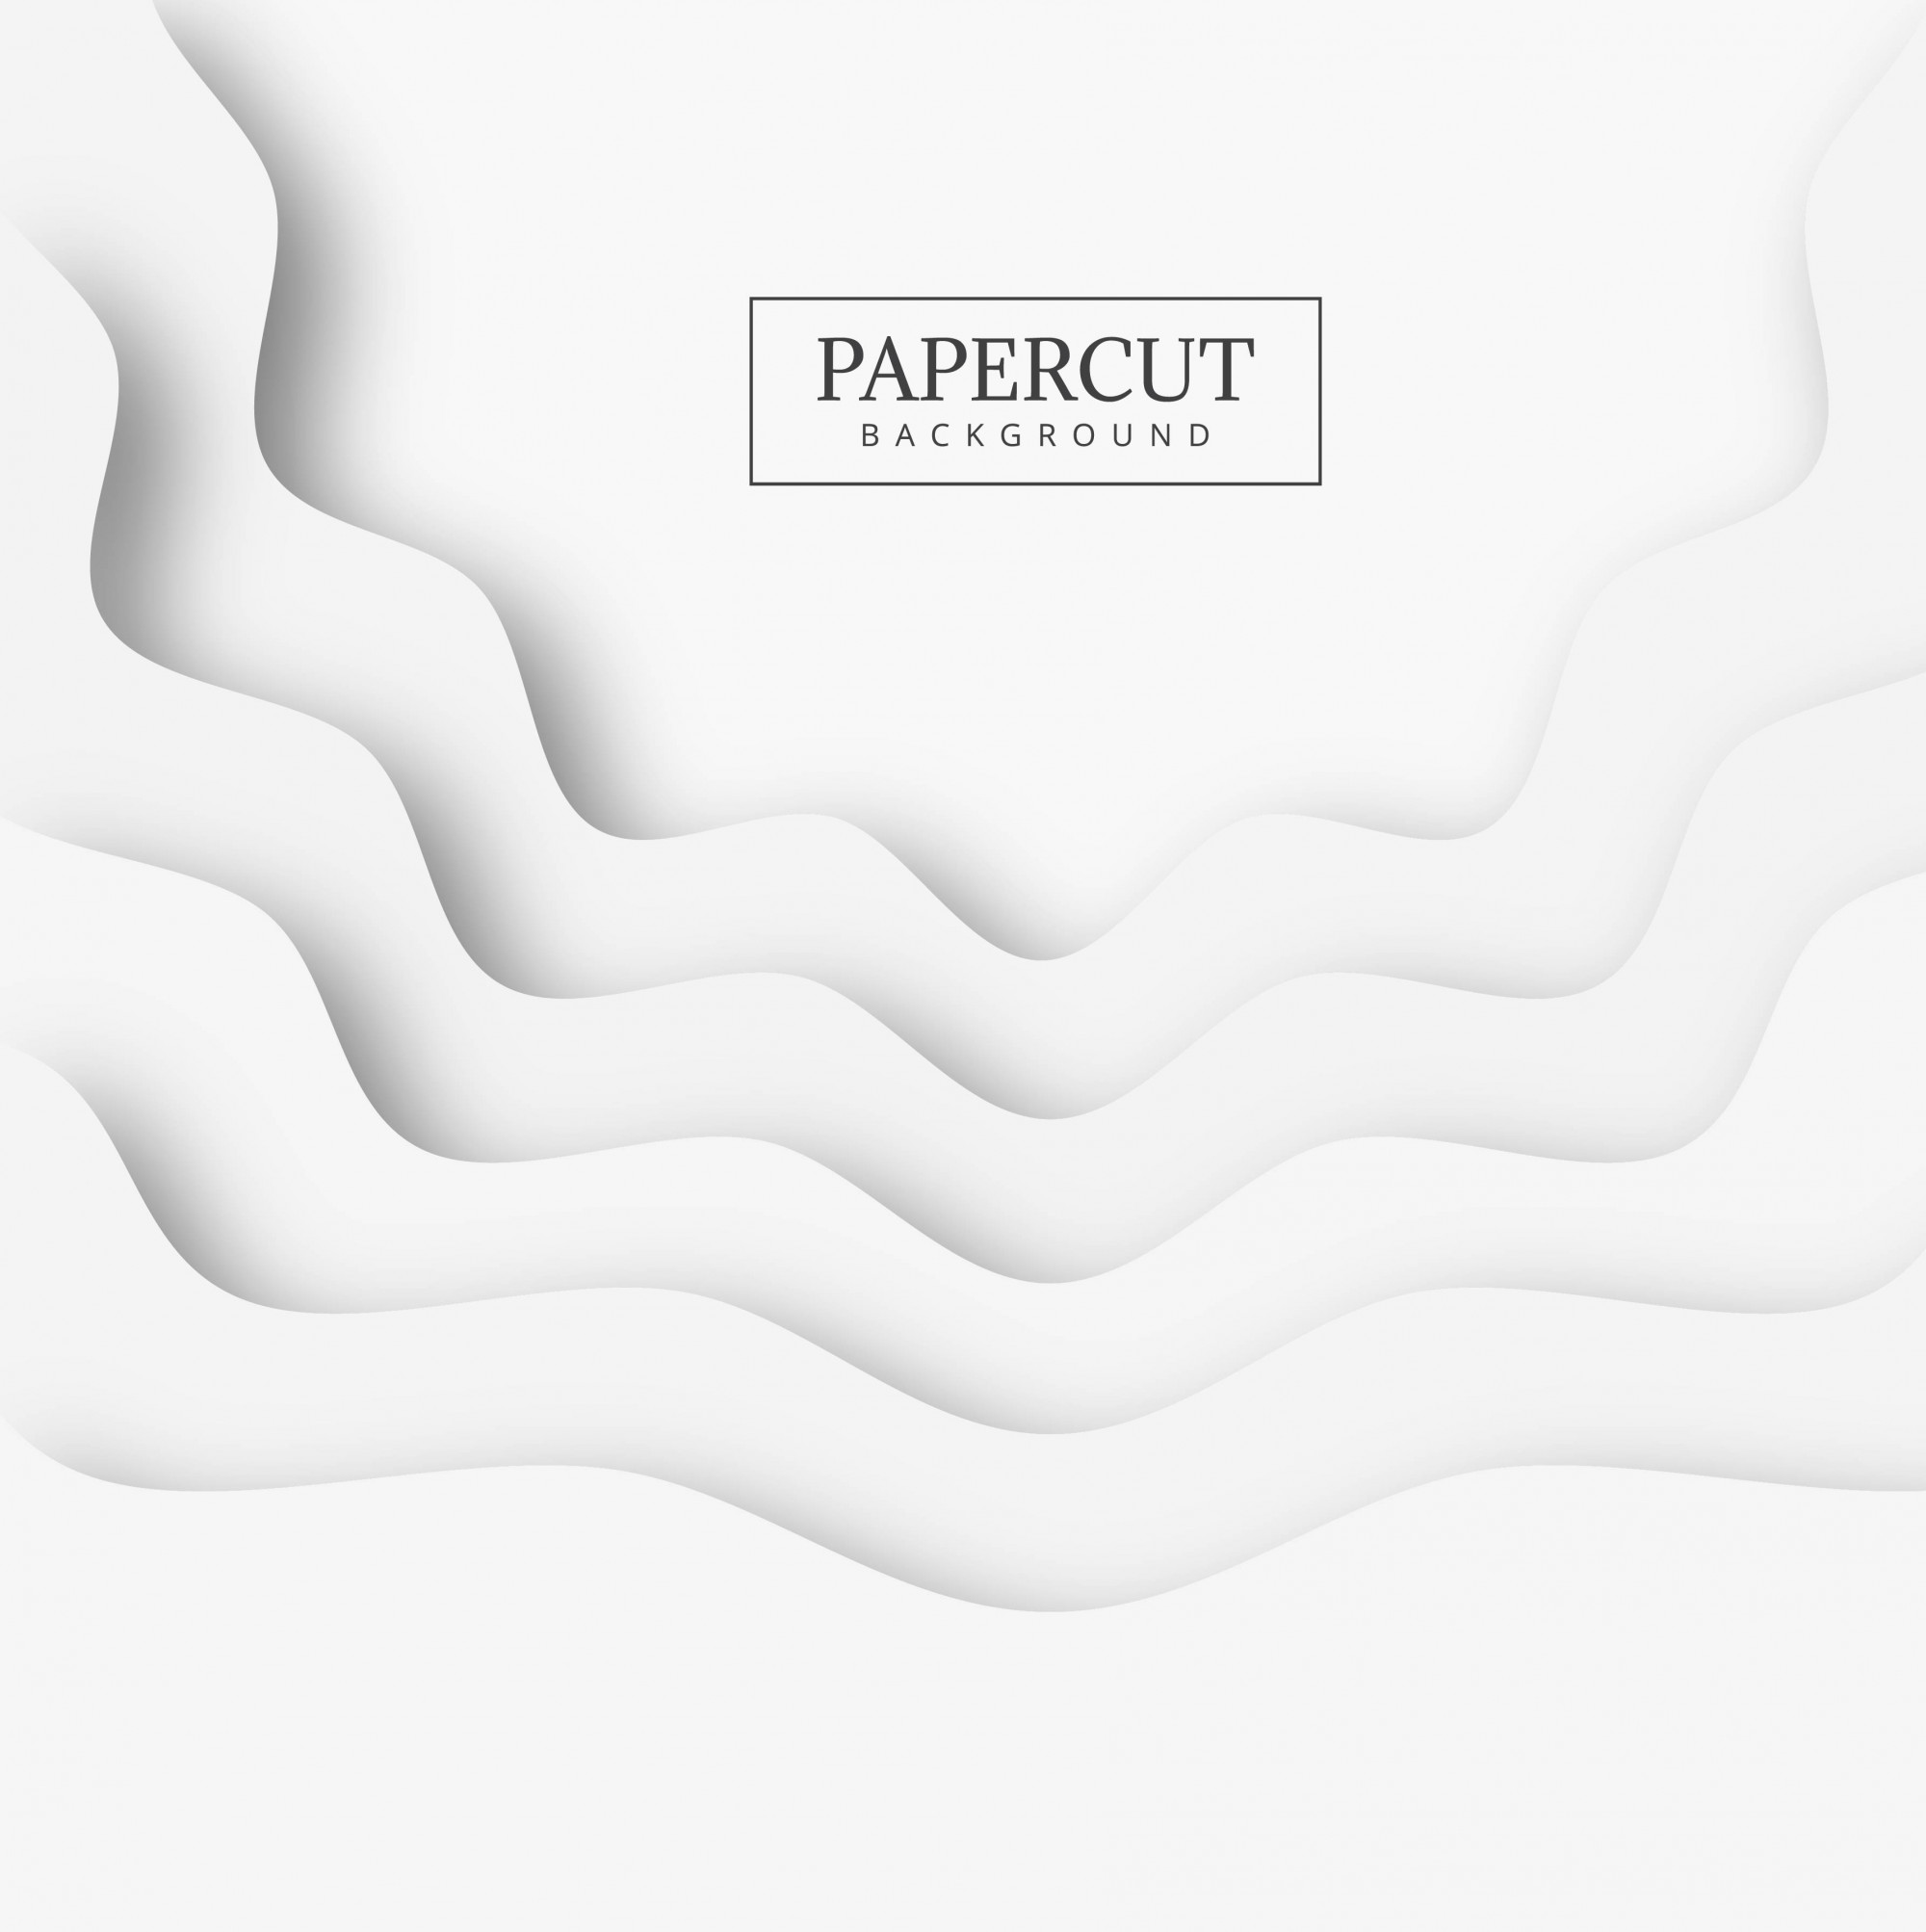 Abstract papercut shape background